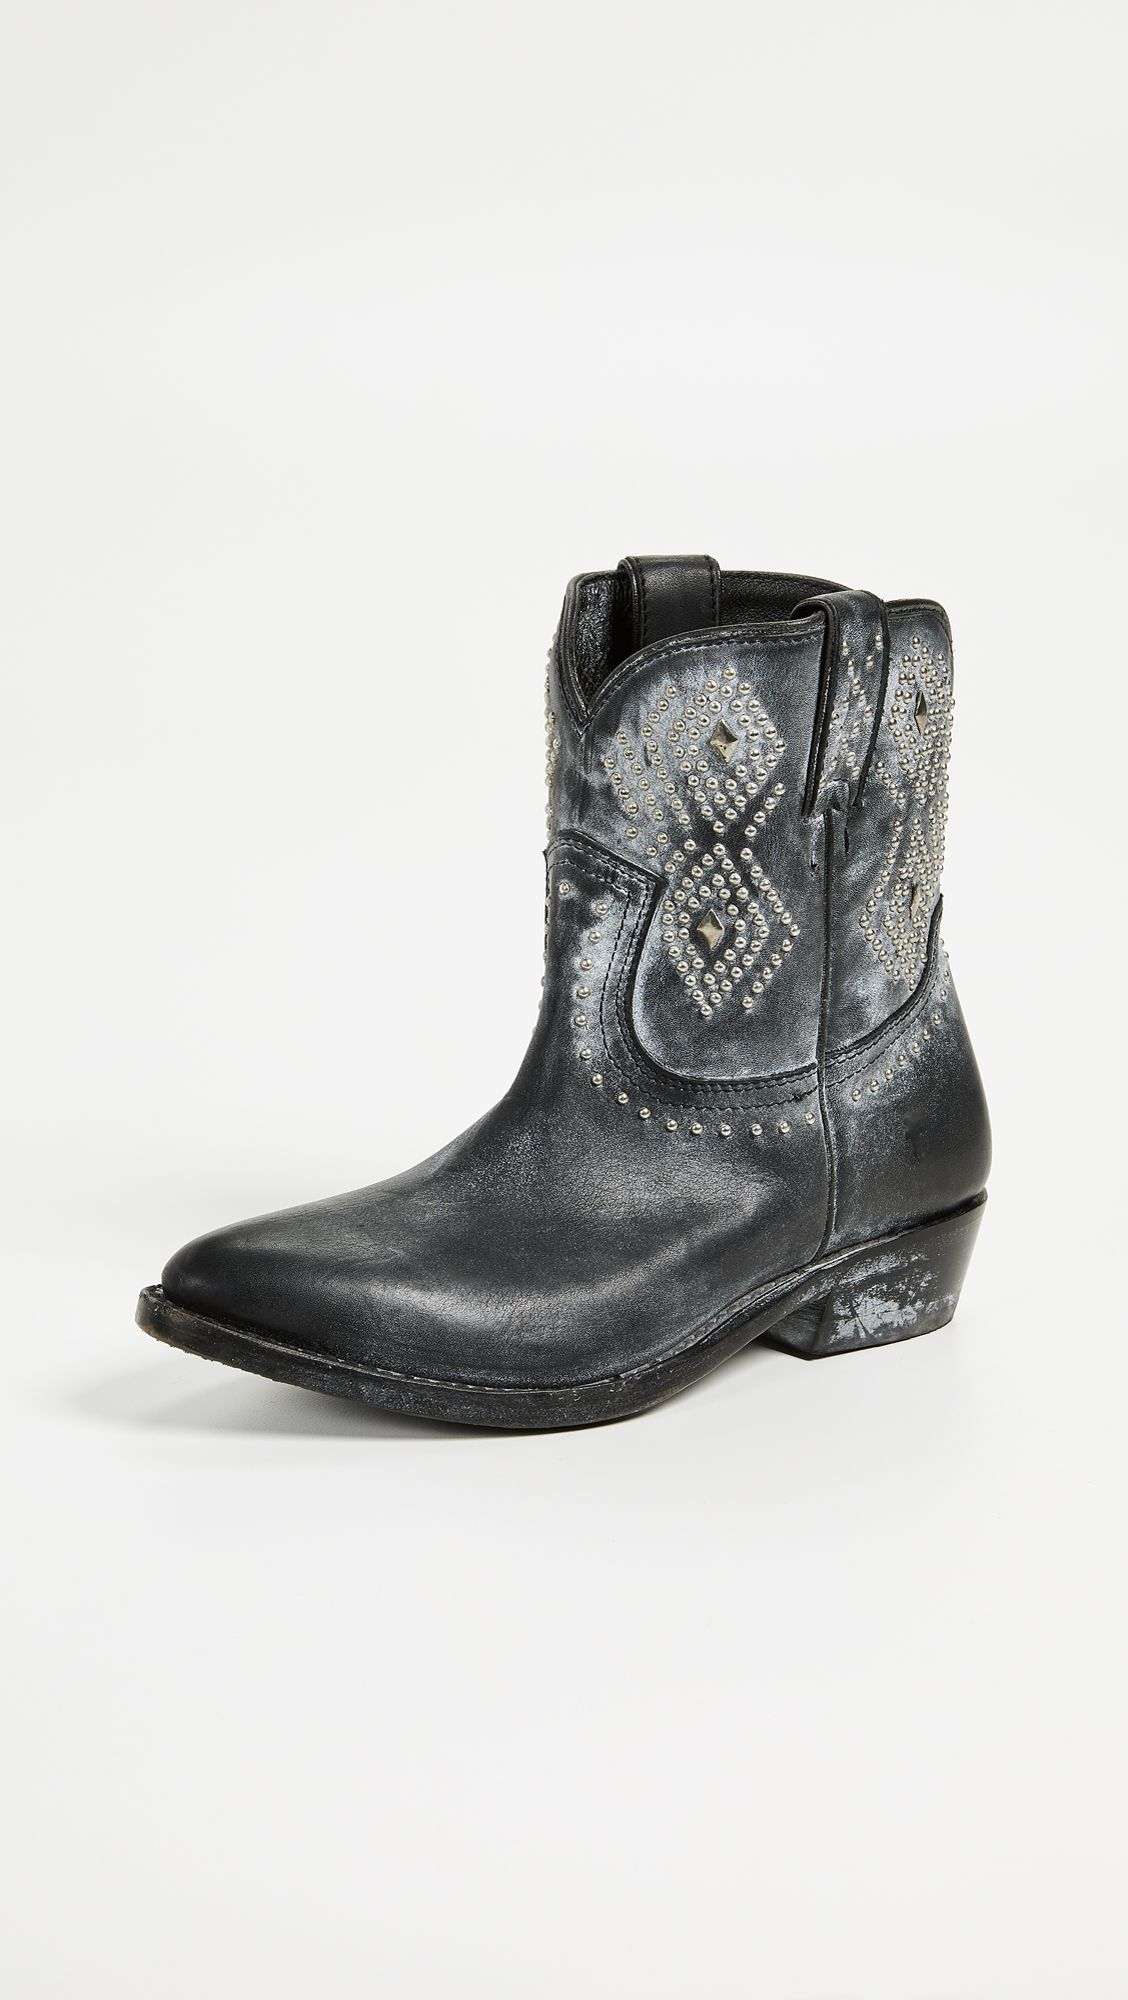 6c13e9dea23 Frye Billy Stud Short Boots